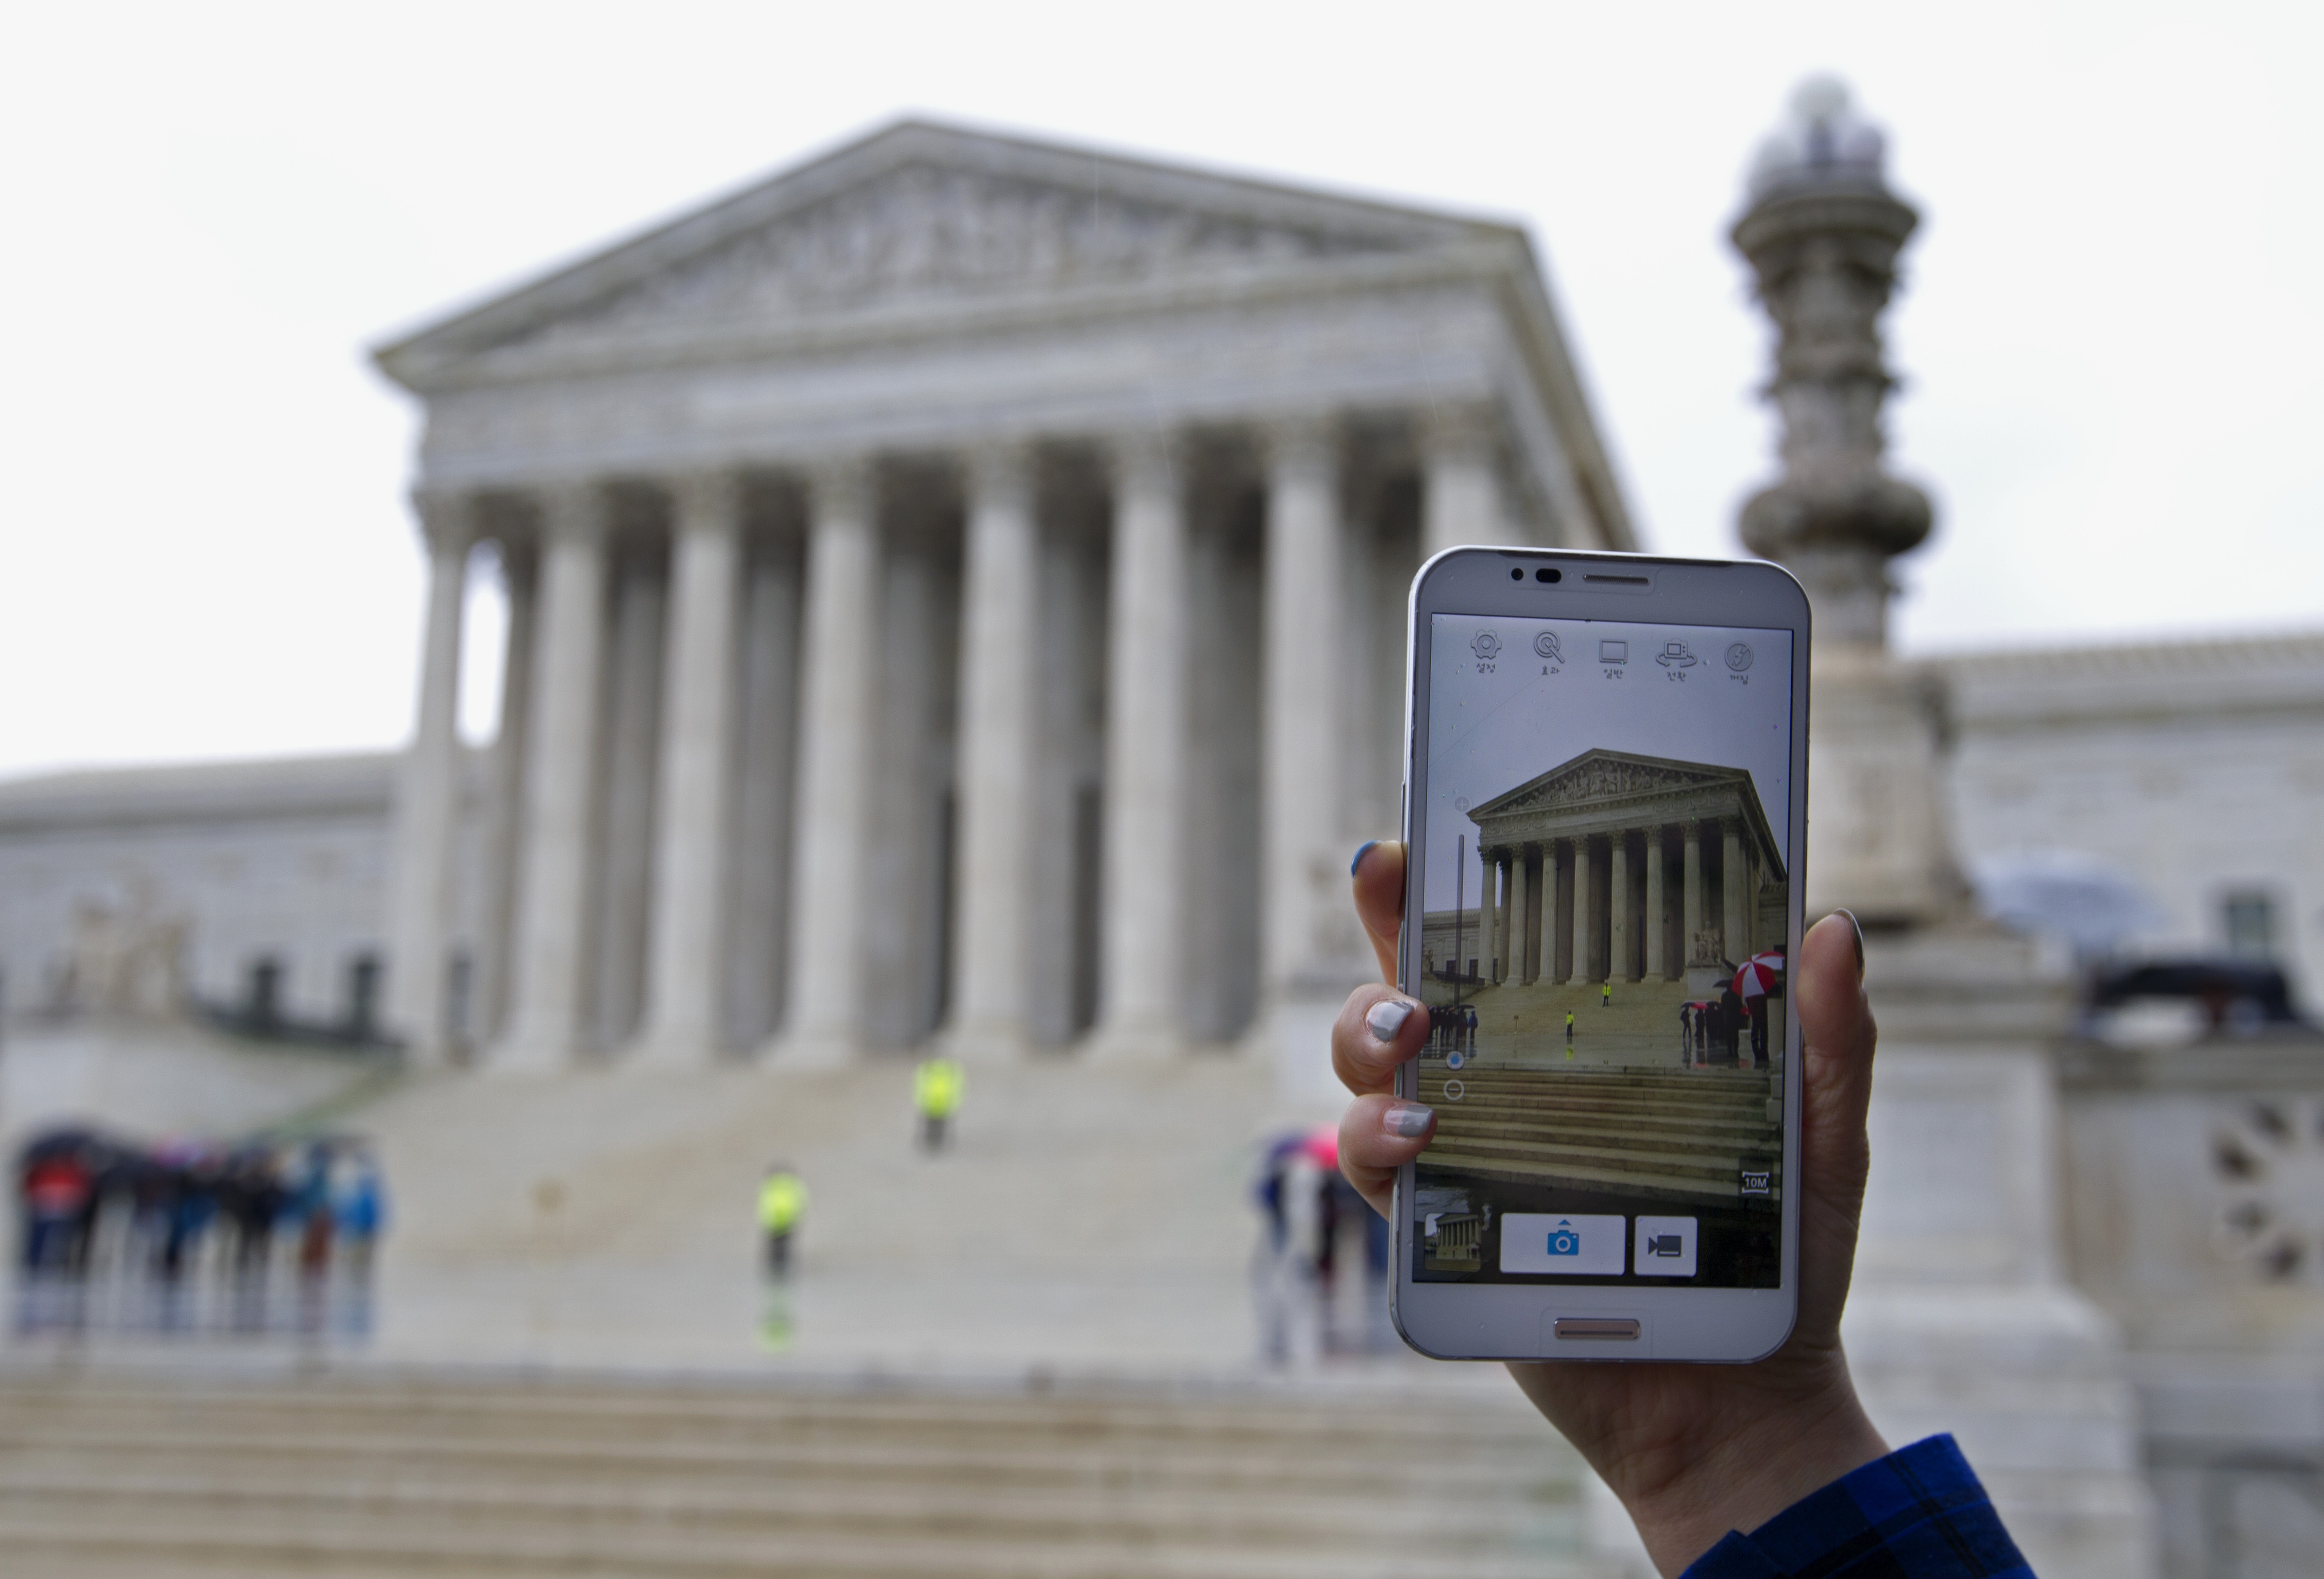 The Supreme Court is considering whether police may search cellphones found on people they arrest without first getting a warrant. ( Associated Press)